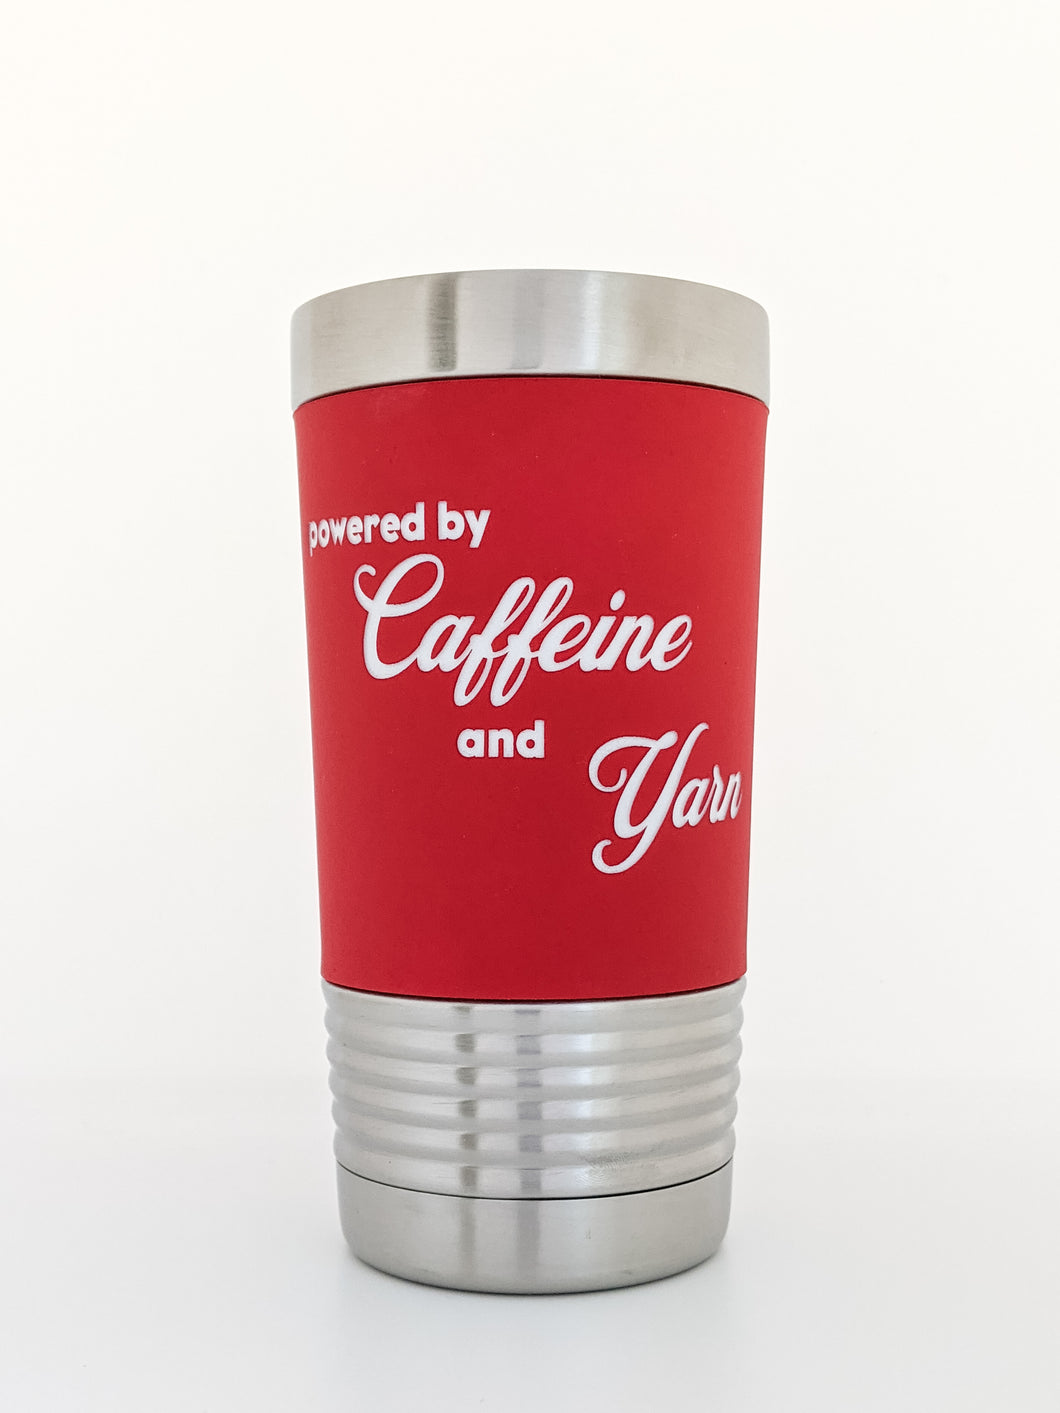 Image shows a stainless steel tumbler wrapped with a removable silicone sleeve that has been laser engraved with the phrase